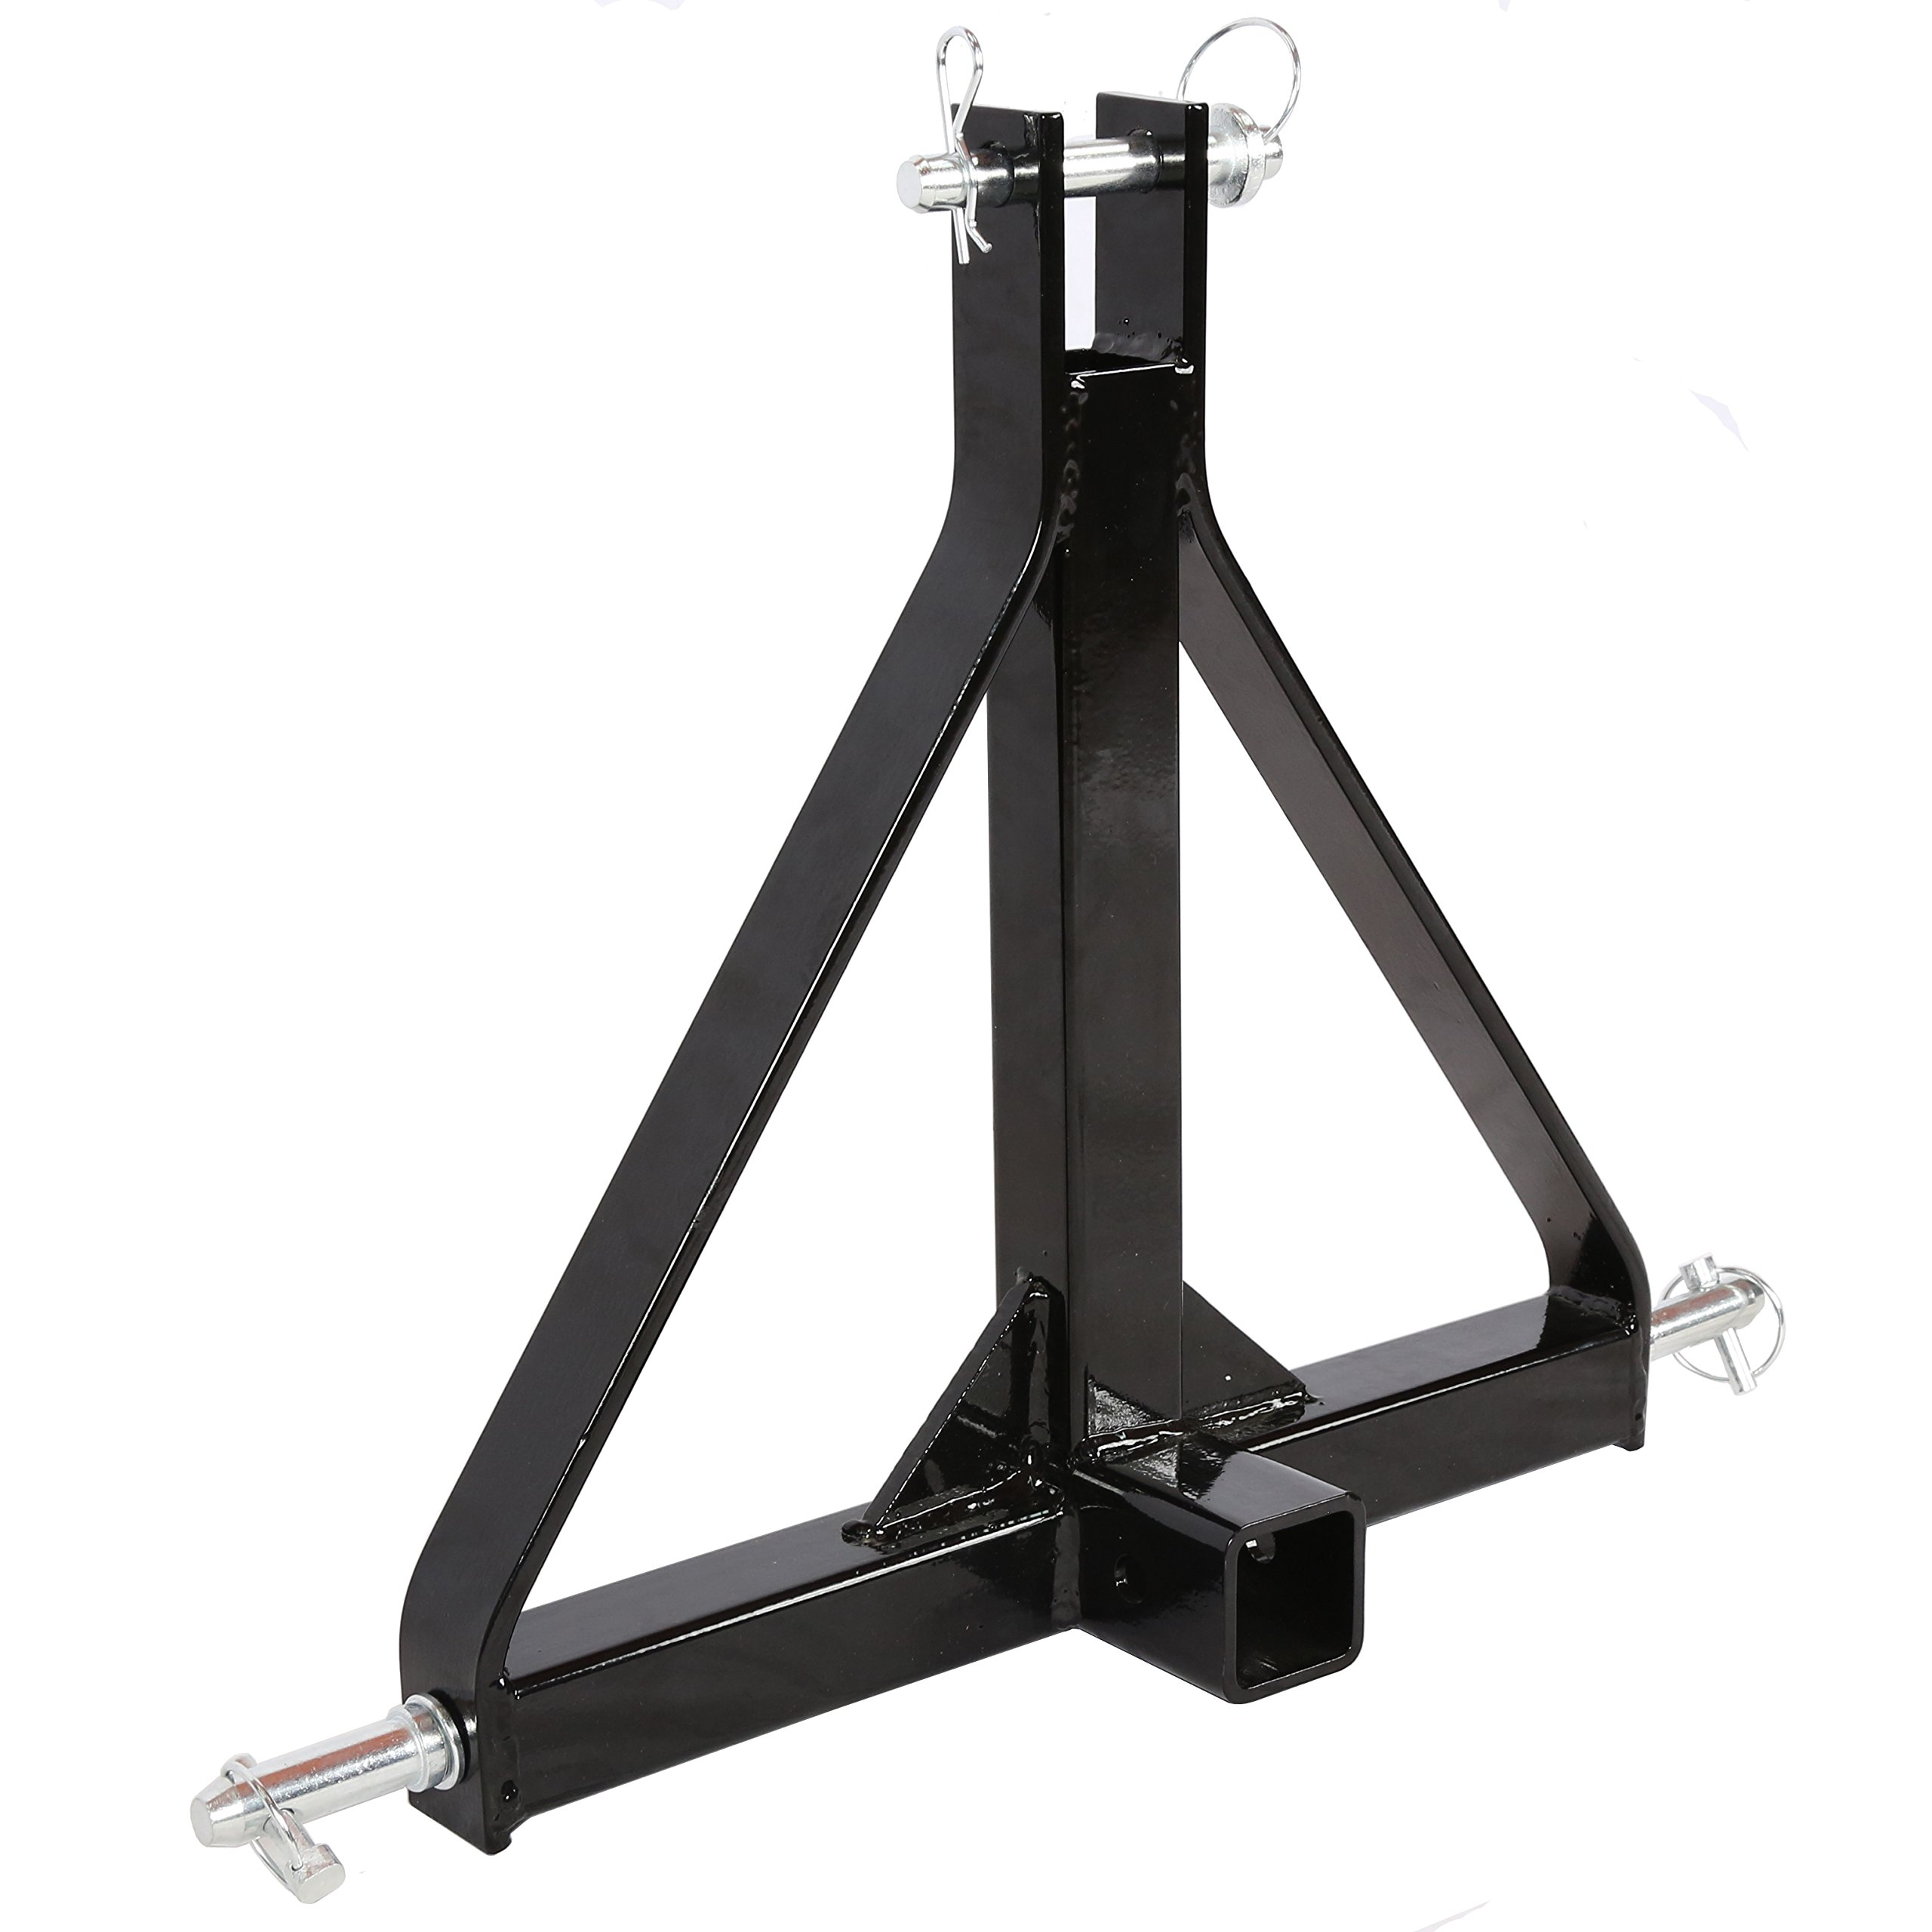 3 Point 2'' Receiver Trailer Hitch Category 1 Tractor Tow Hitch Drawbar Adapter by EGOBIKE